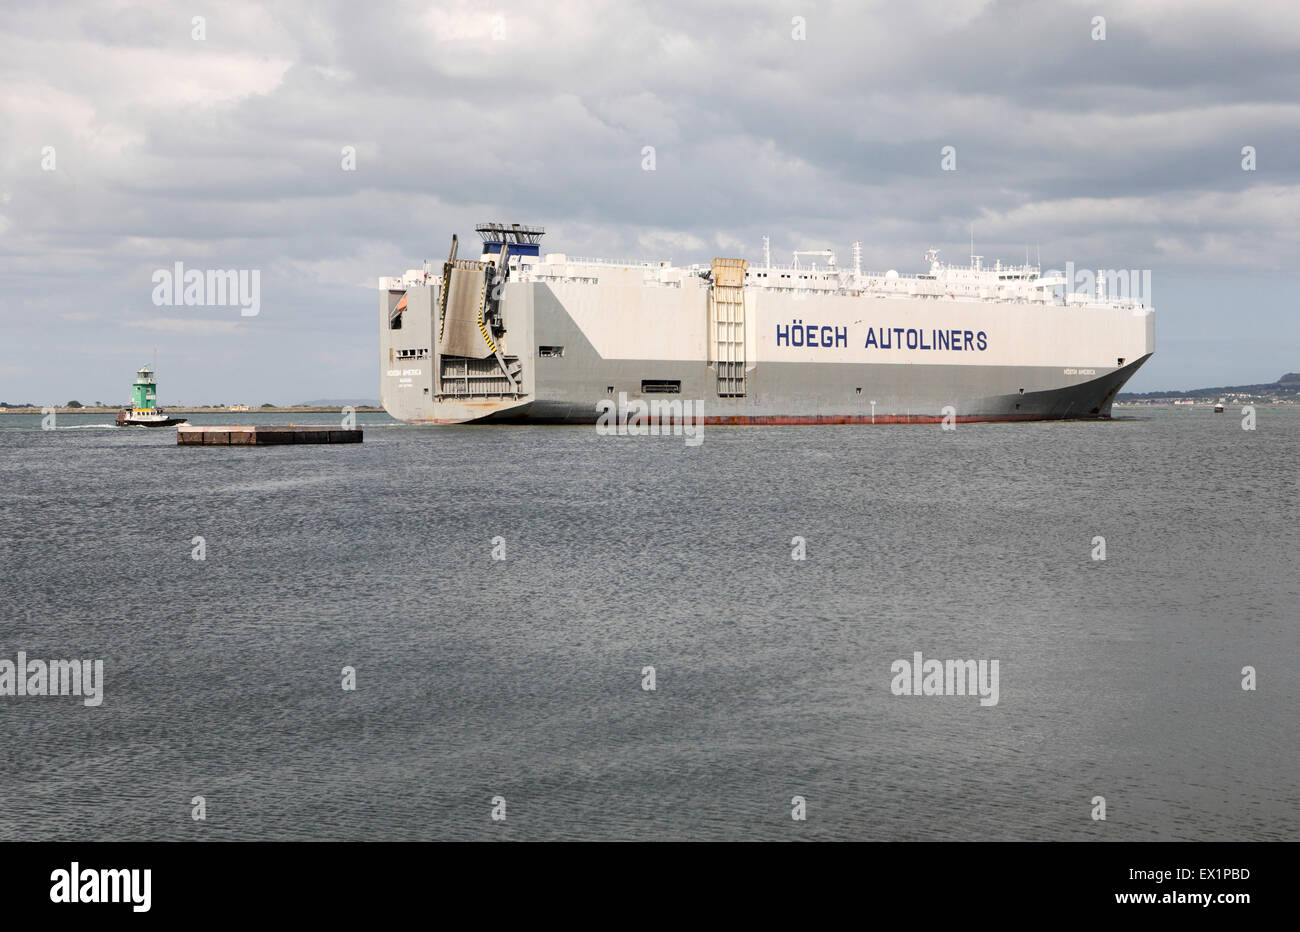 Hoegh Autoliners Stock Photos & Hoegh Autoliners Stock